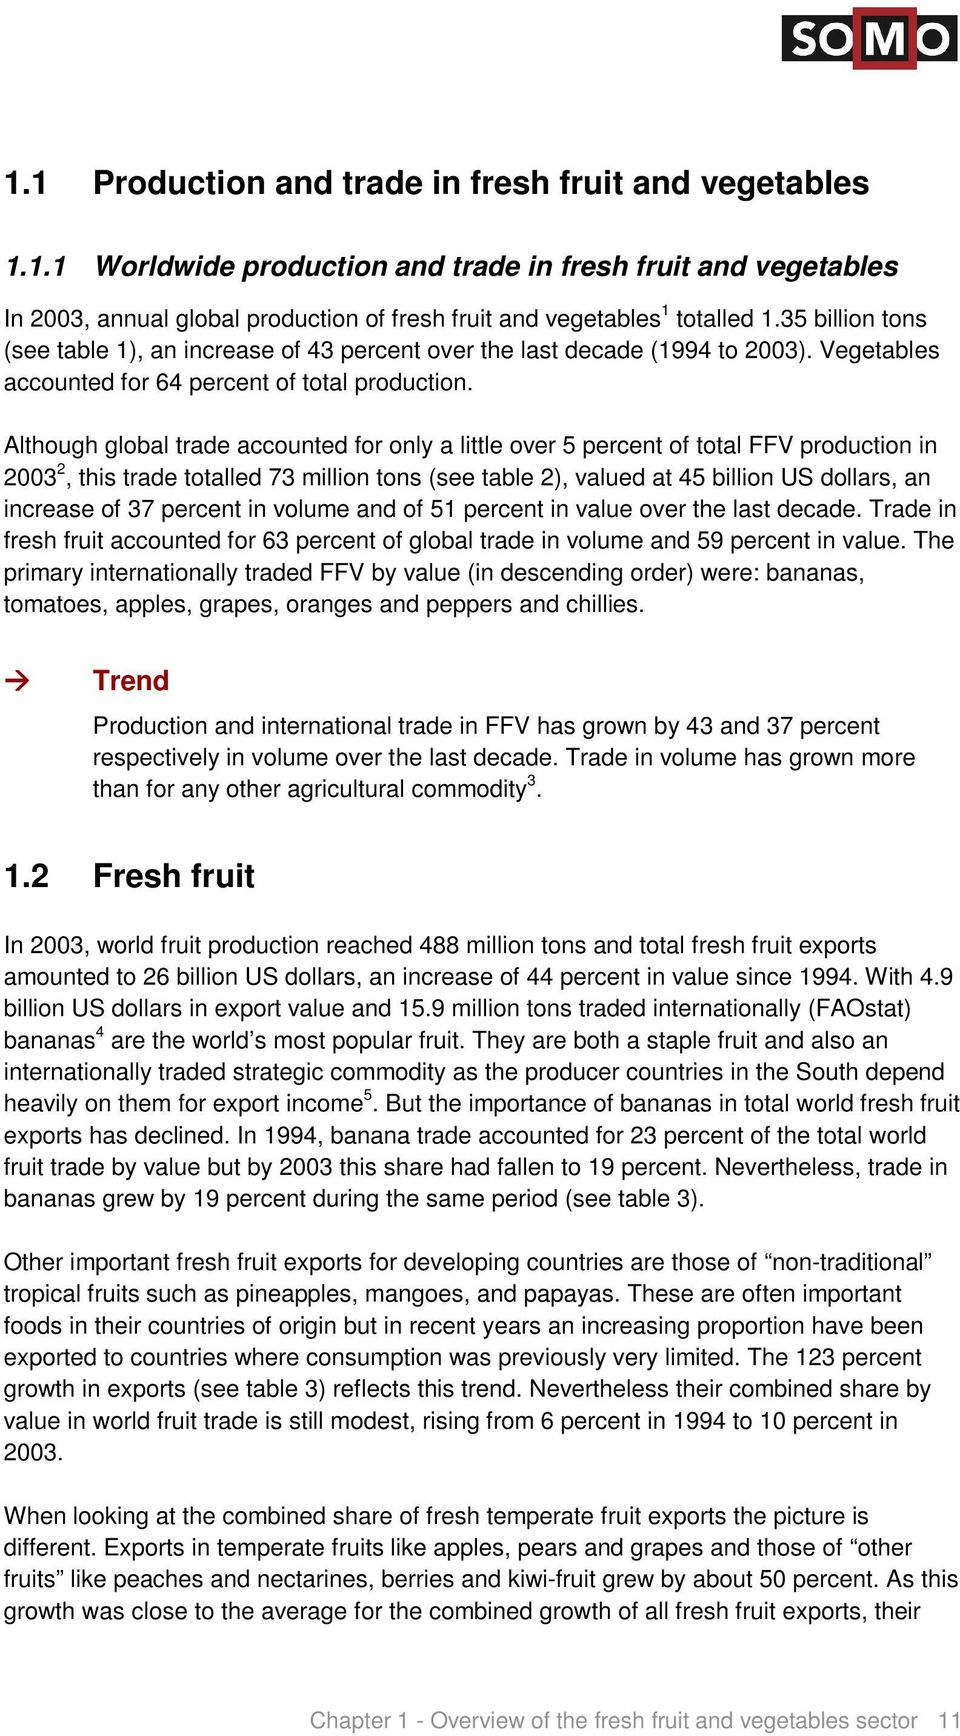 Although global trade accounted for only a little over 5 percent of total FFV production in 2003 2, this trade totalled 73 million tons (see table 2), valued at 45 billion US dollars, an increase of